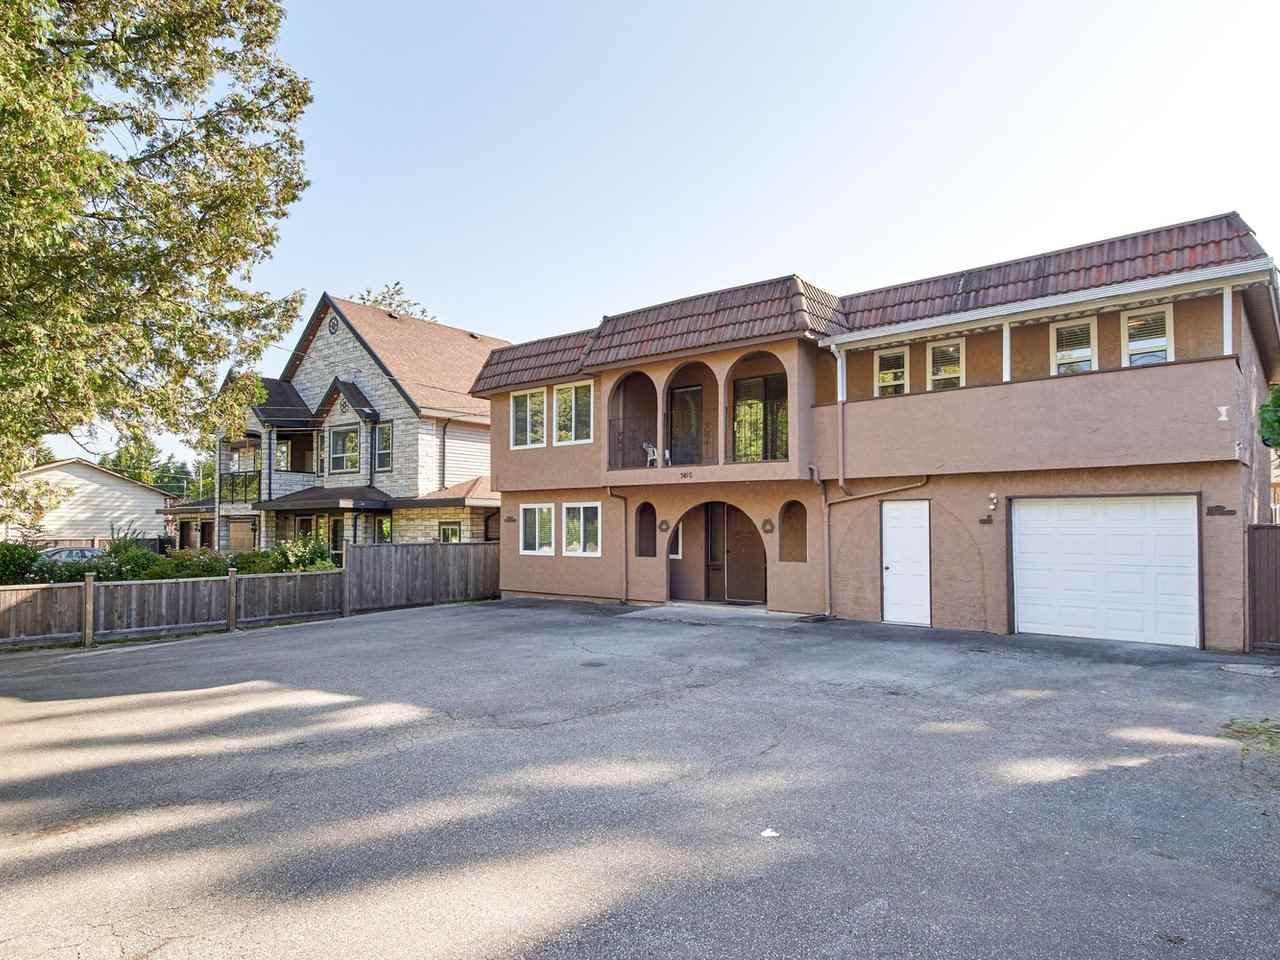 Main Photo: 7450 140 Street in Surrey: East Newton House for sale : MLS®# R2400135